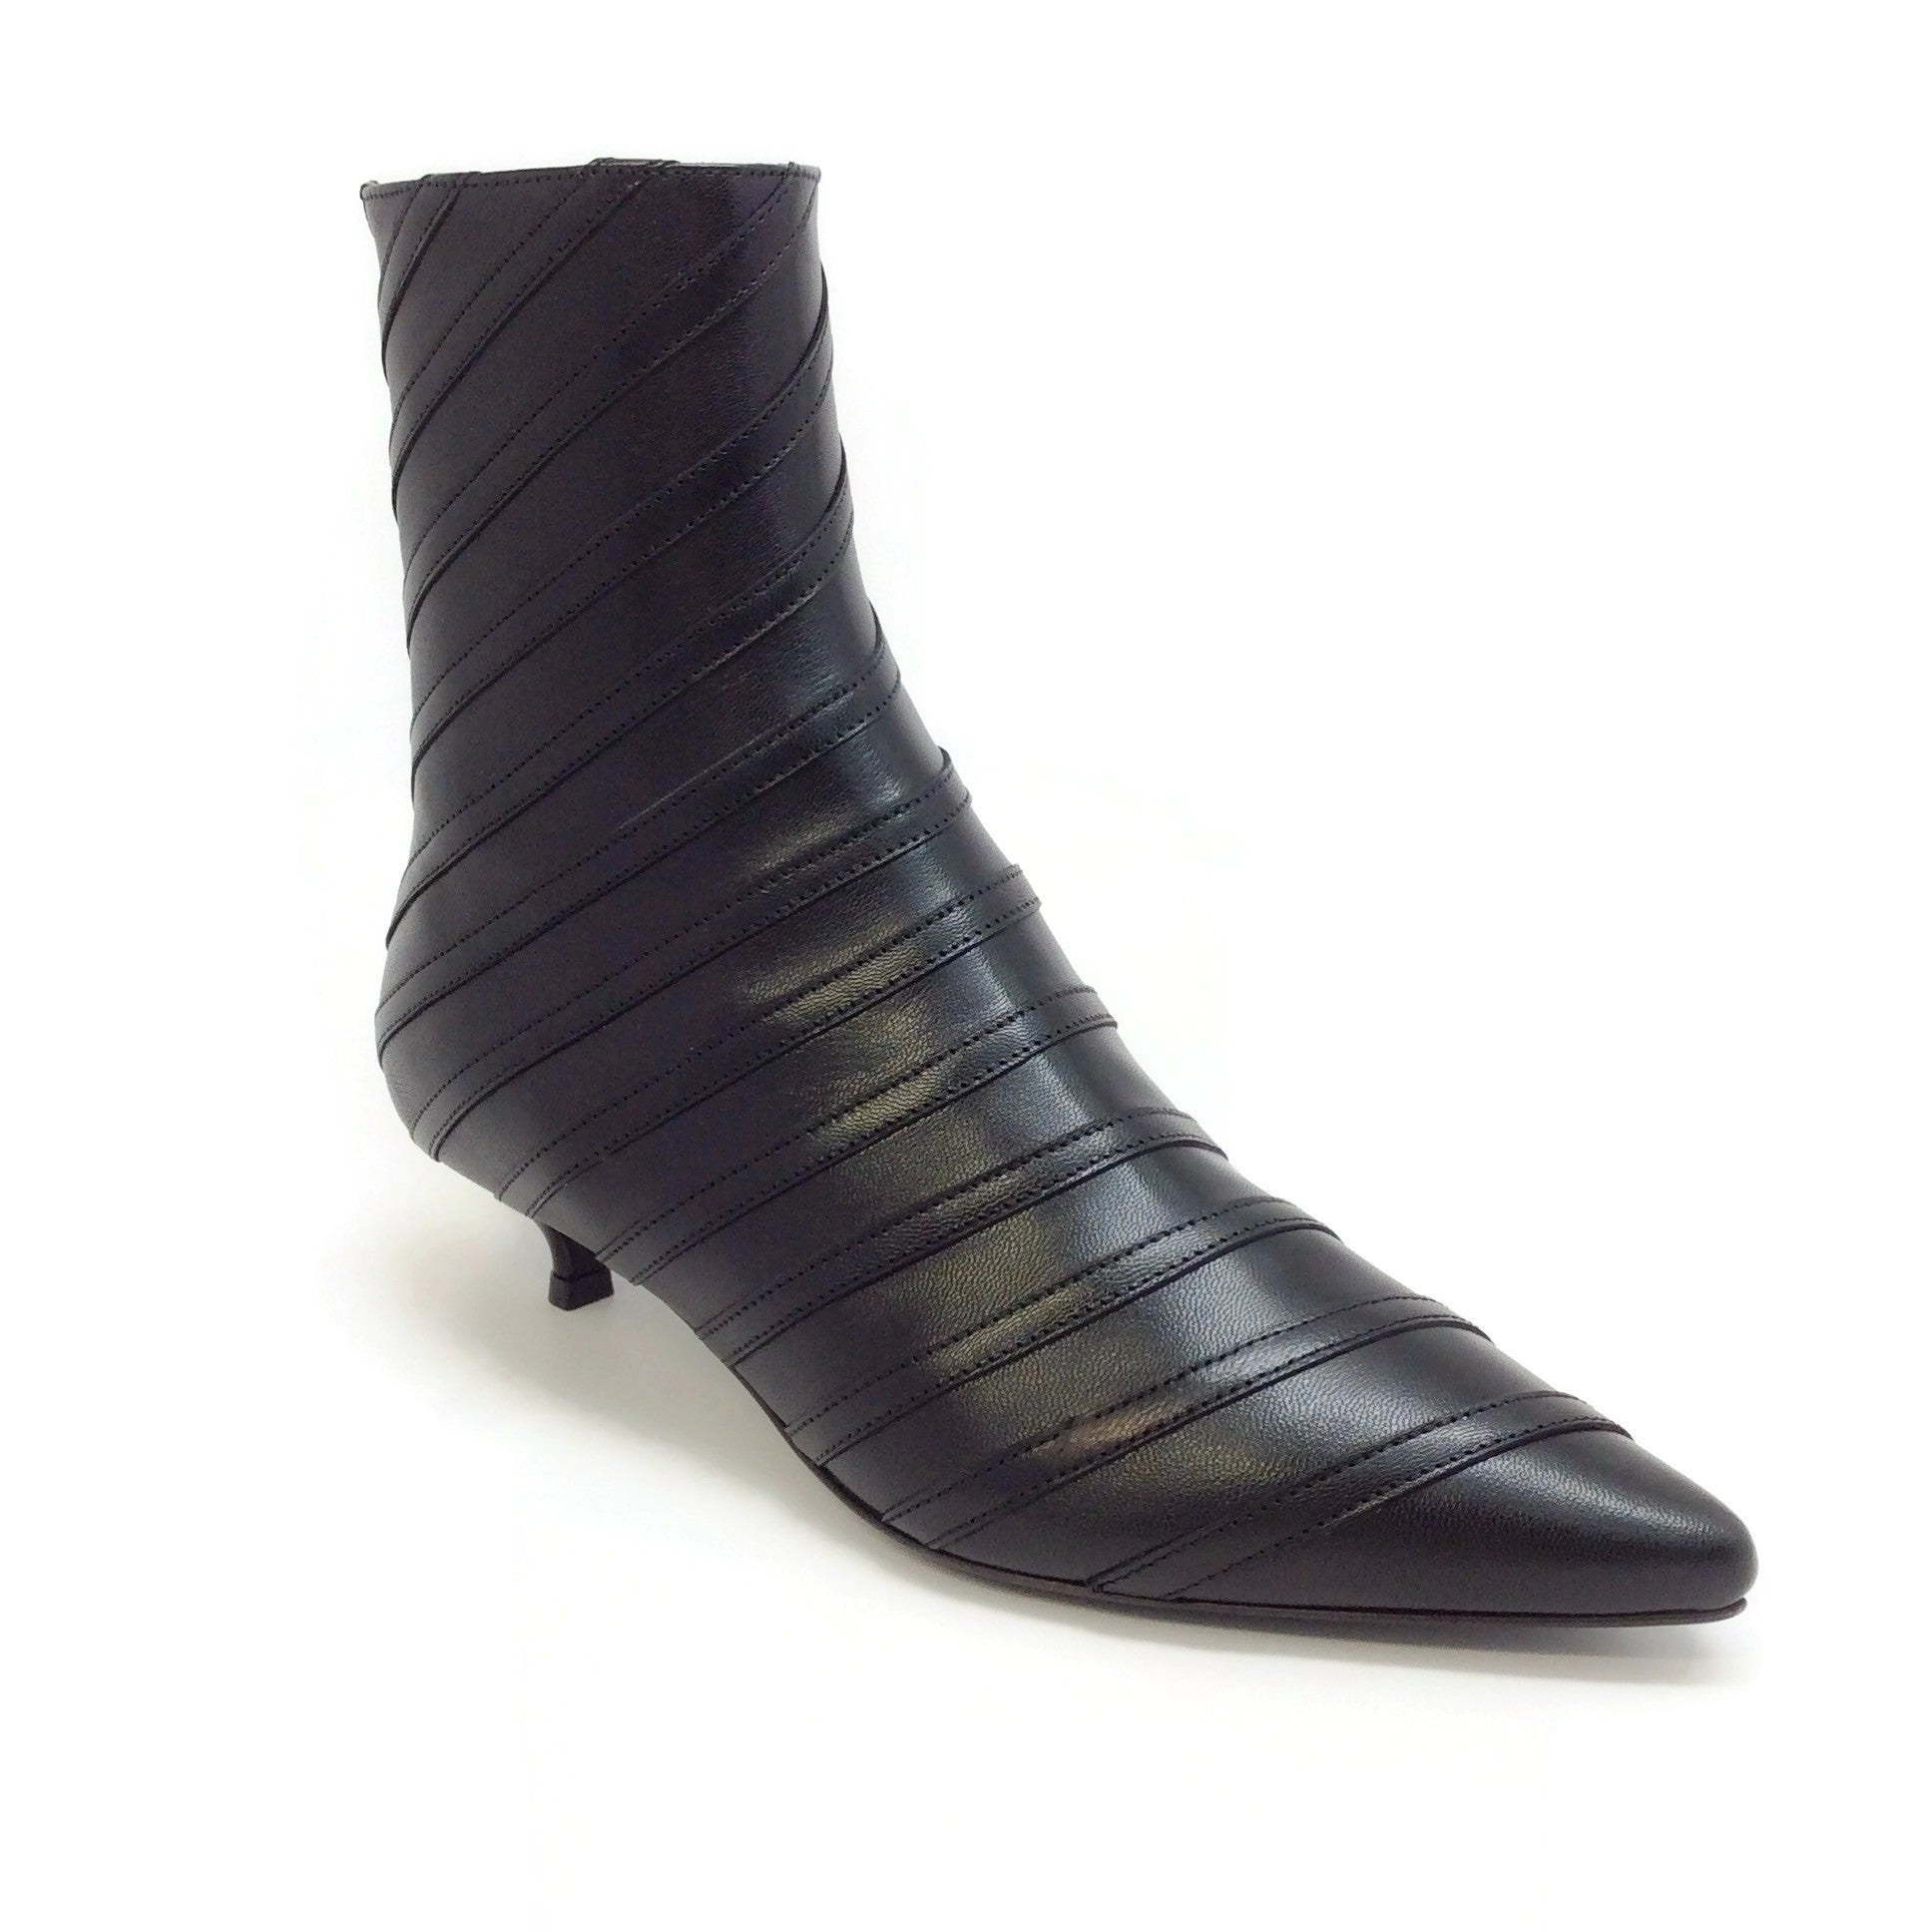 Sonia Rykiel Black Leather Stripe Detail Kitten Heel Boots